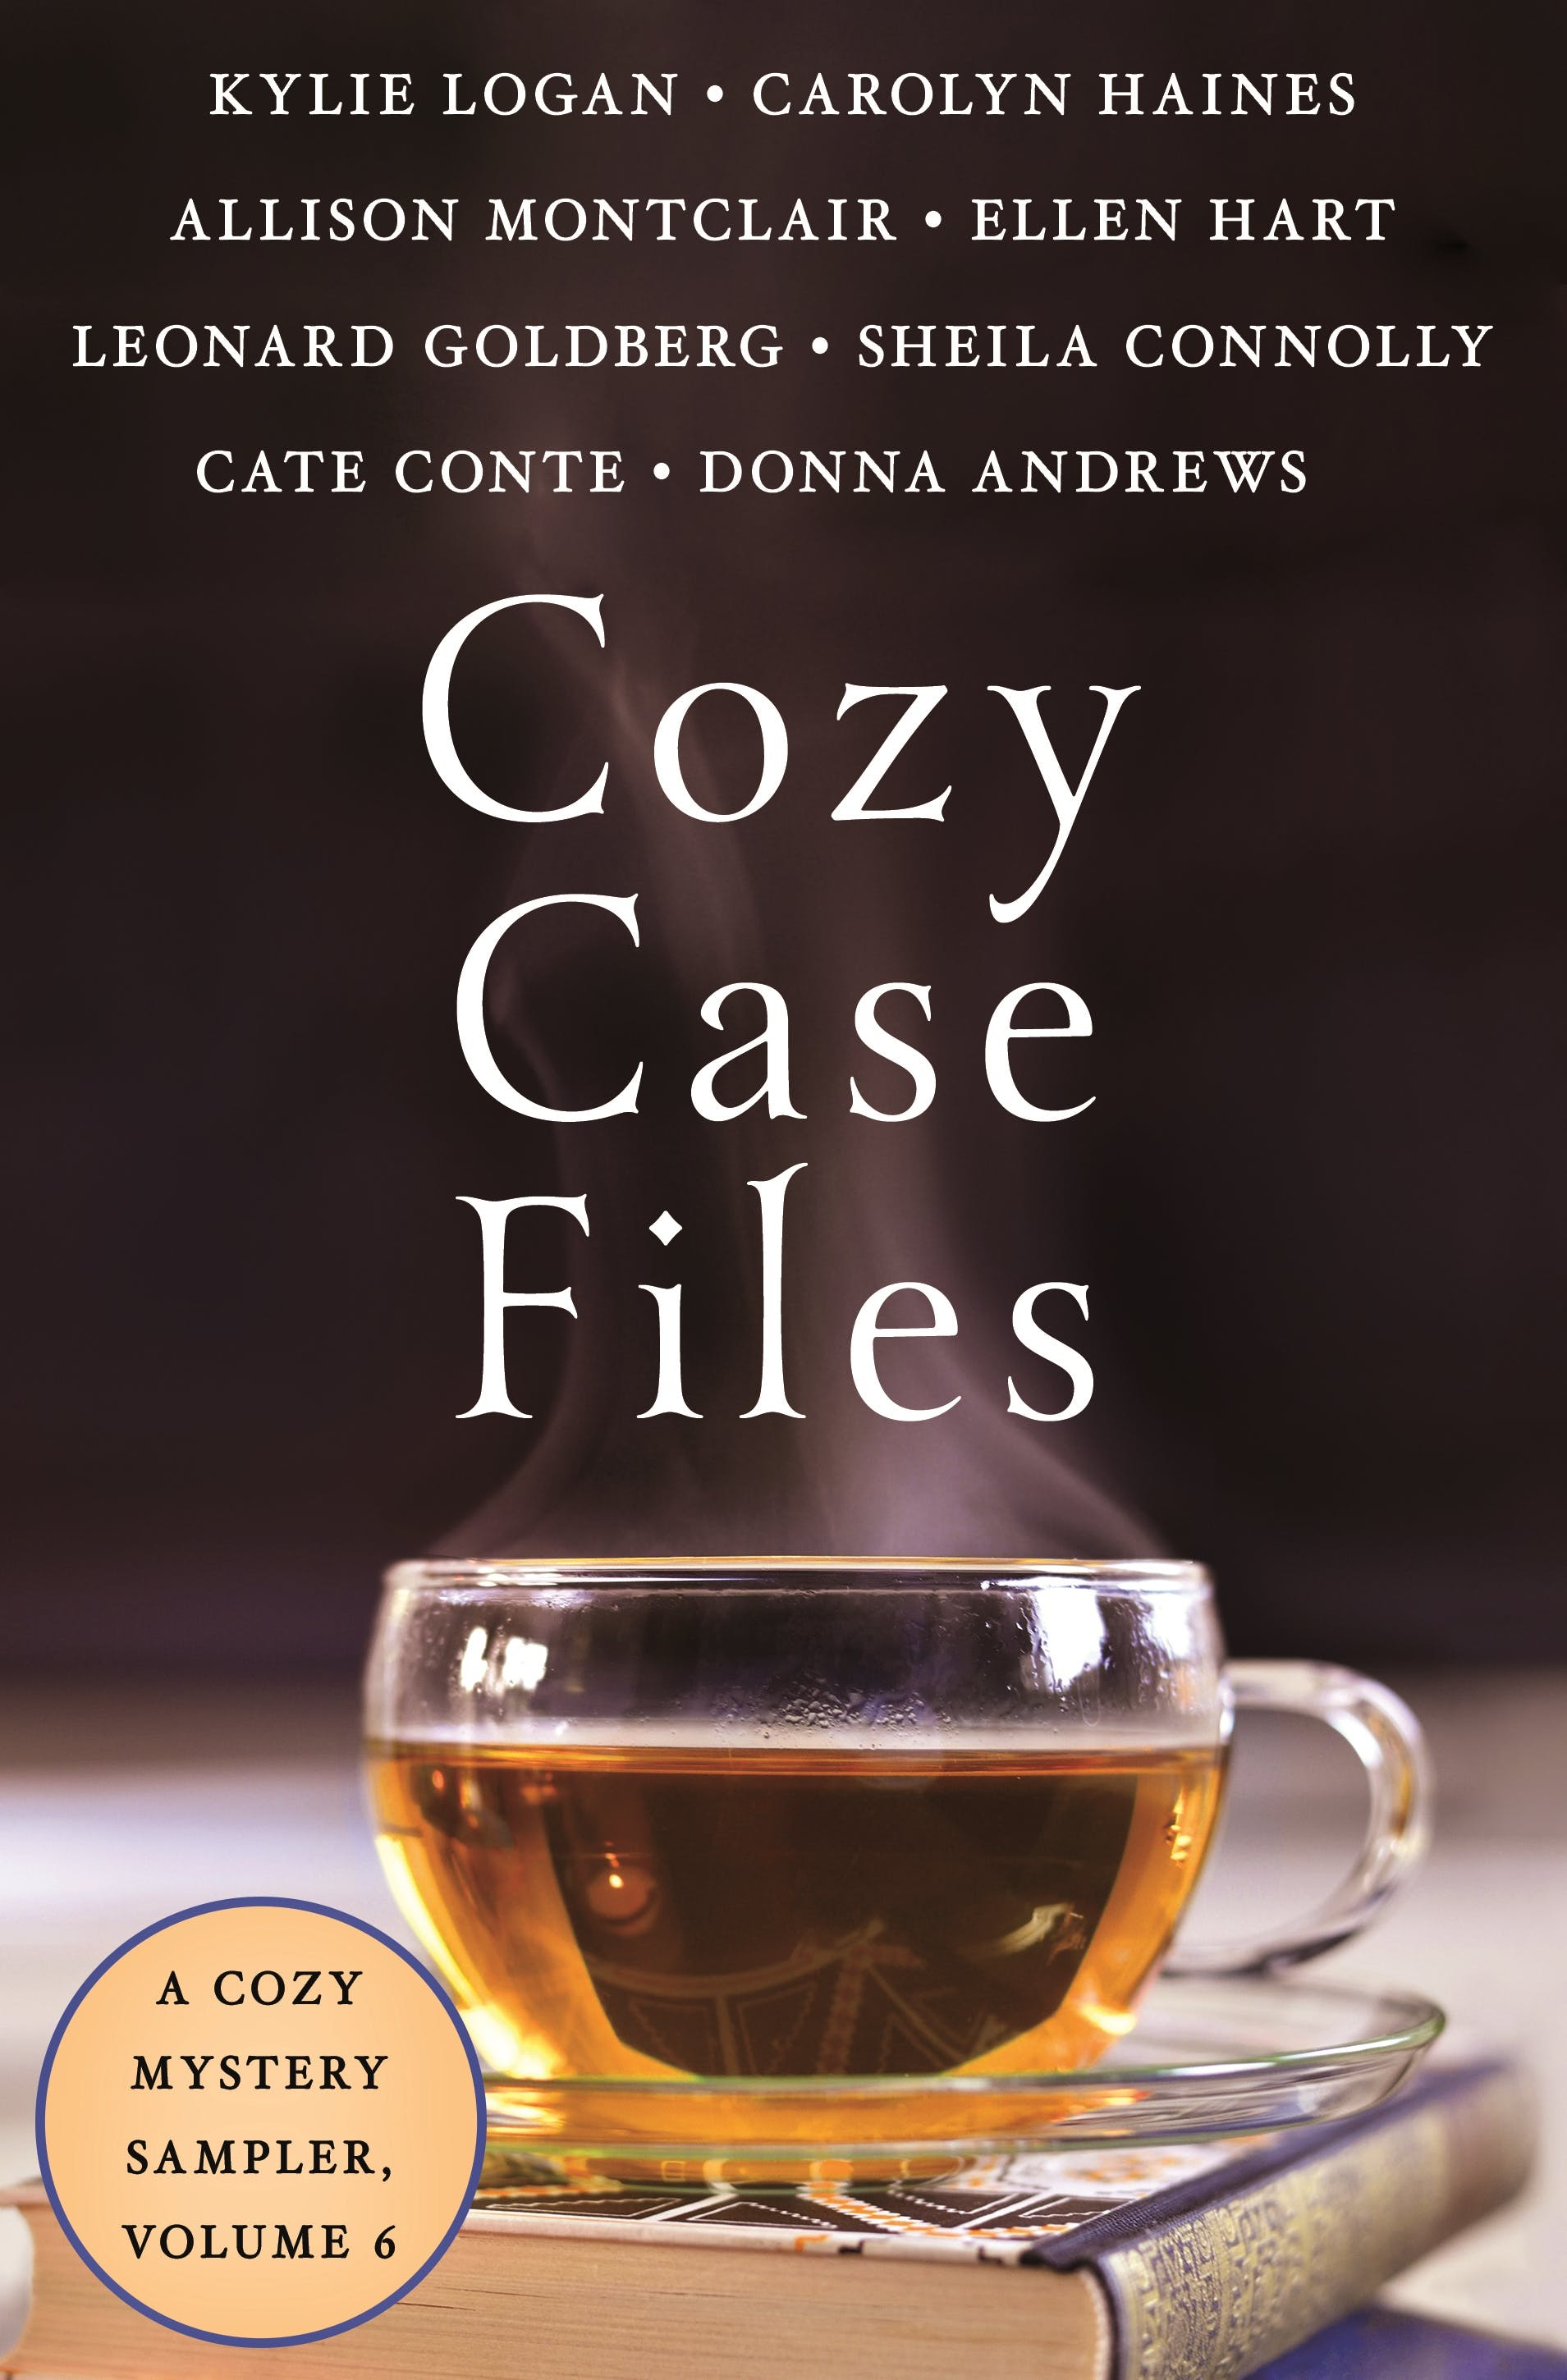 Image of Cozy Case Files: A Cozy Mystery Sampler, Volume 6